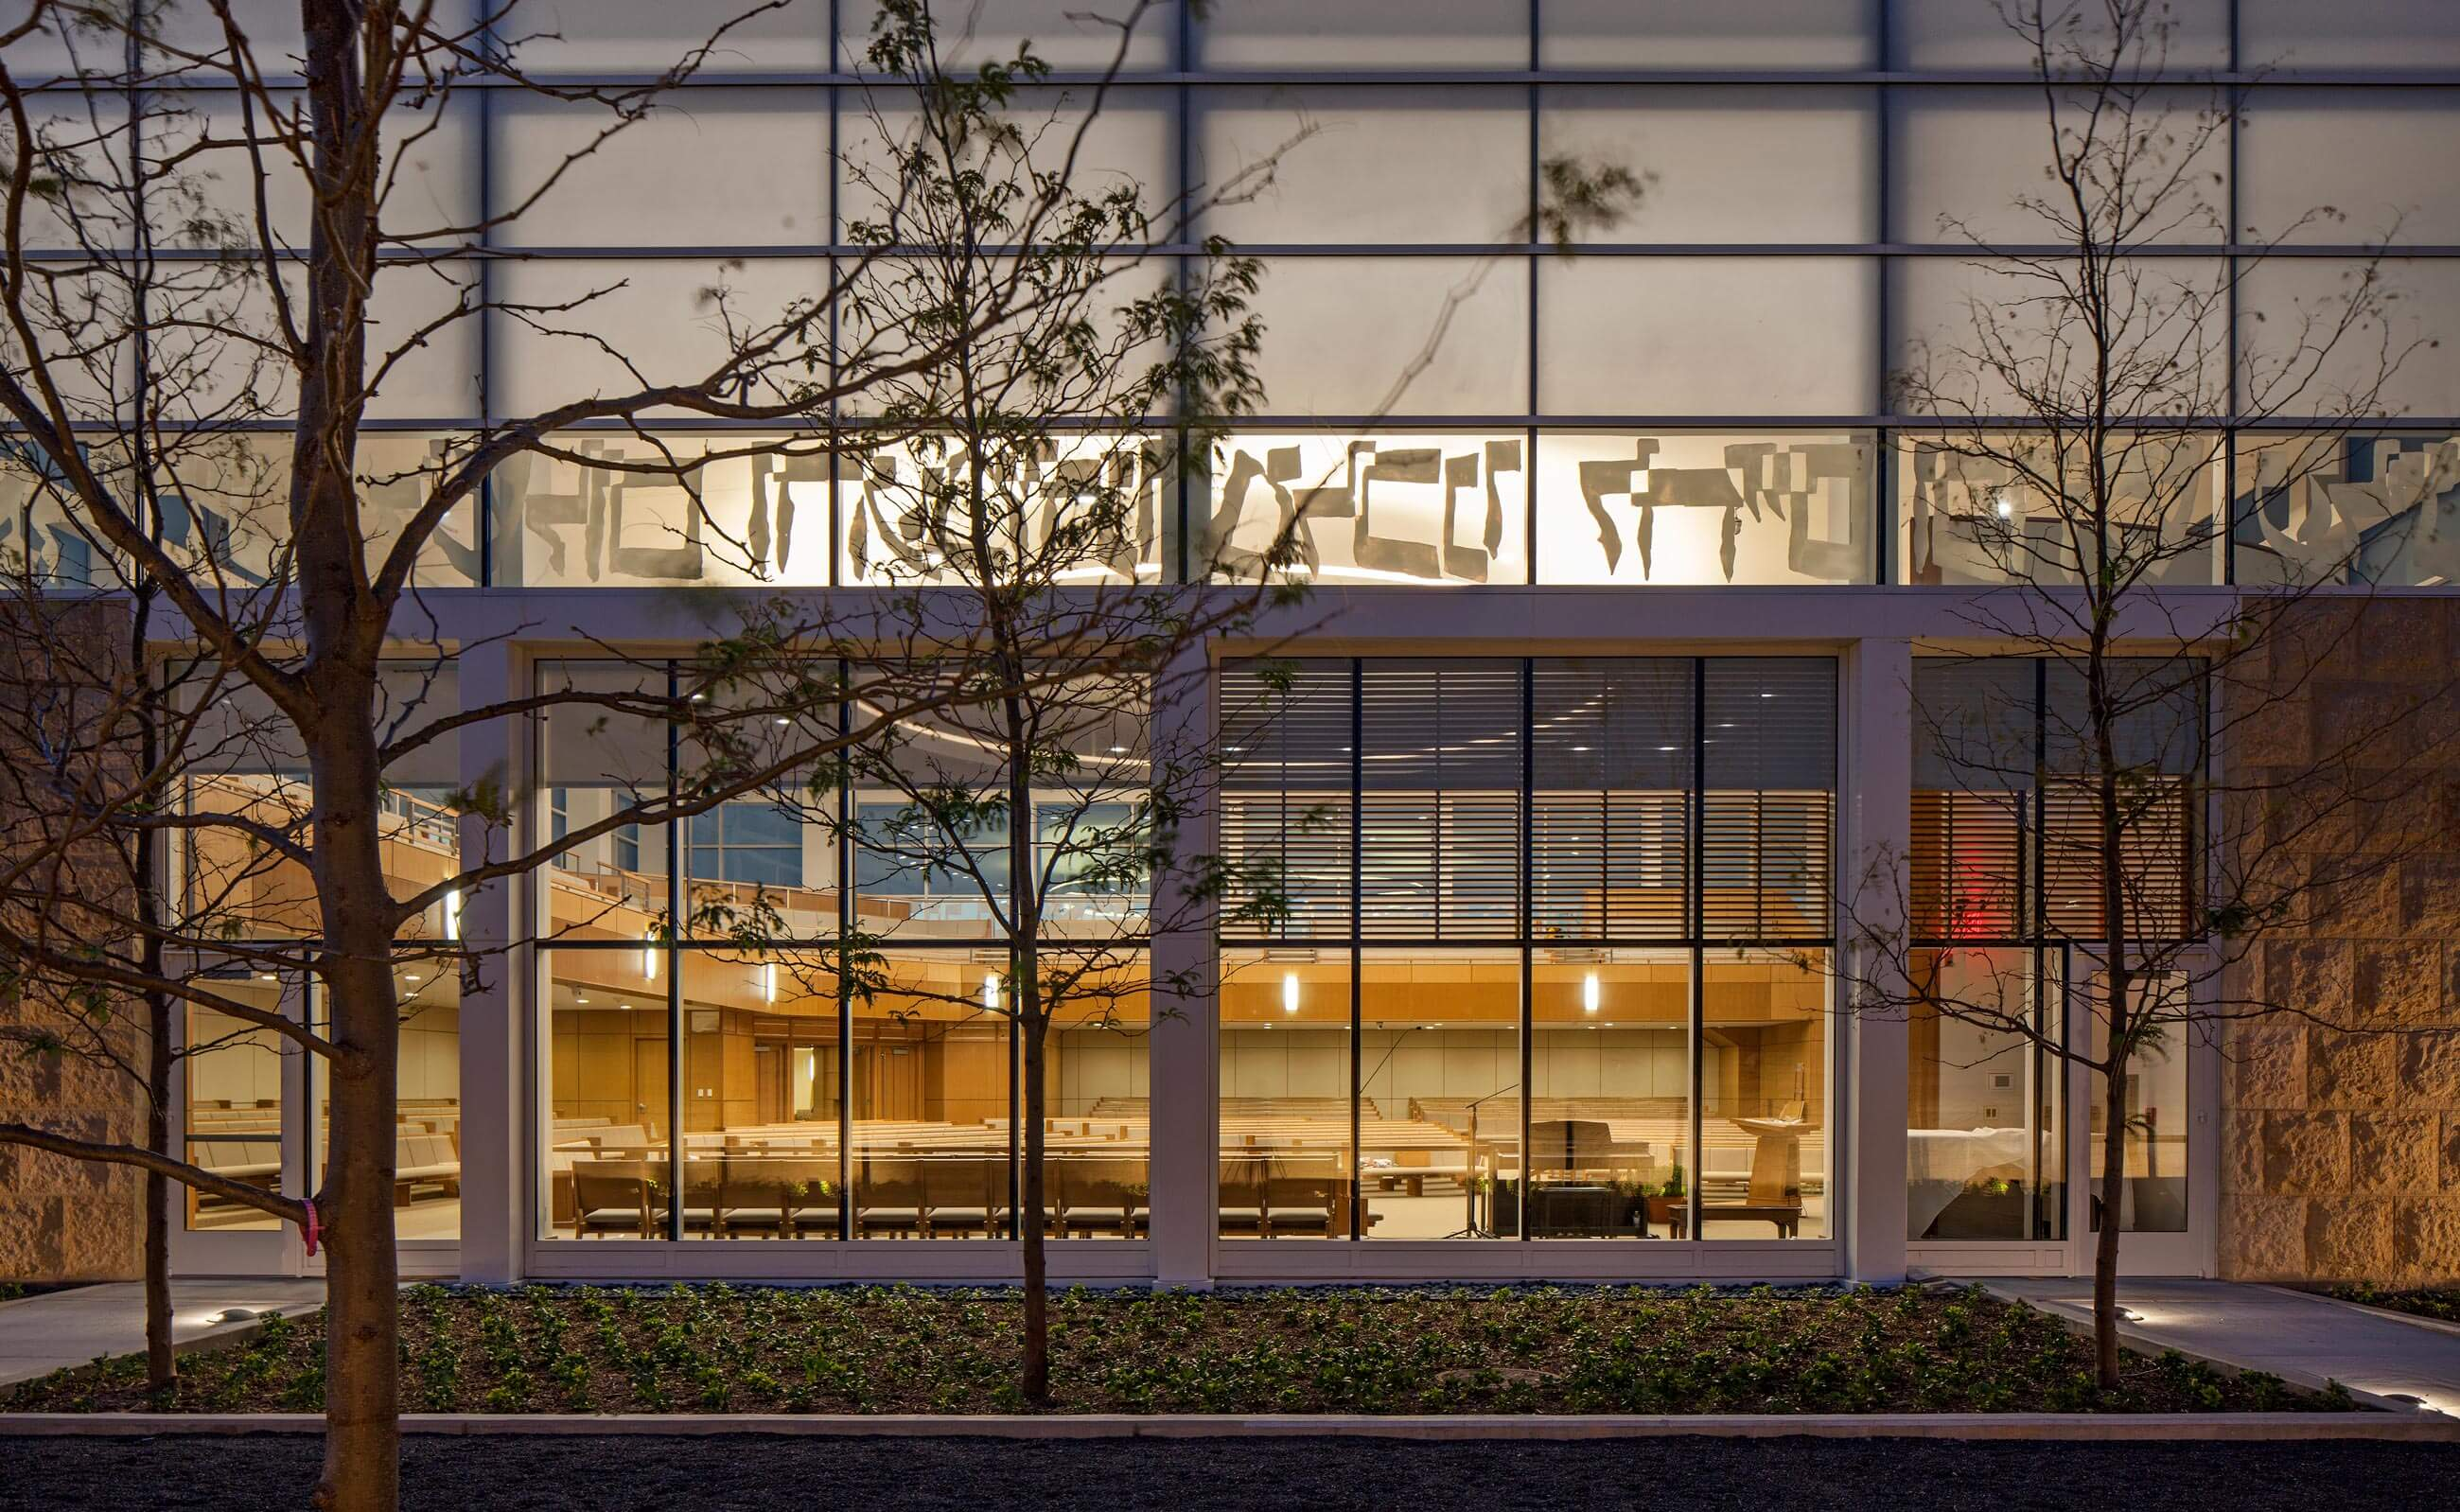 View from the courtyard into the sanctuary at night, with trees in the foreground, and Hebrew lettering at the separation between frosted and clear glass.